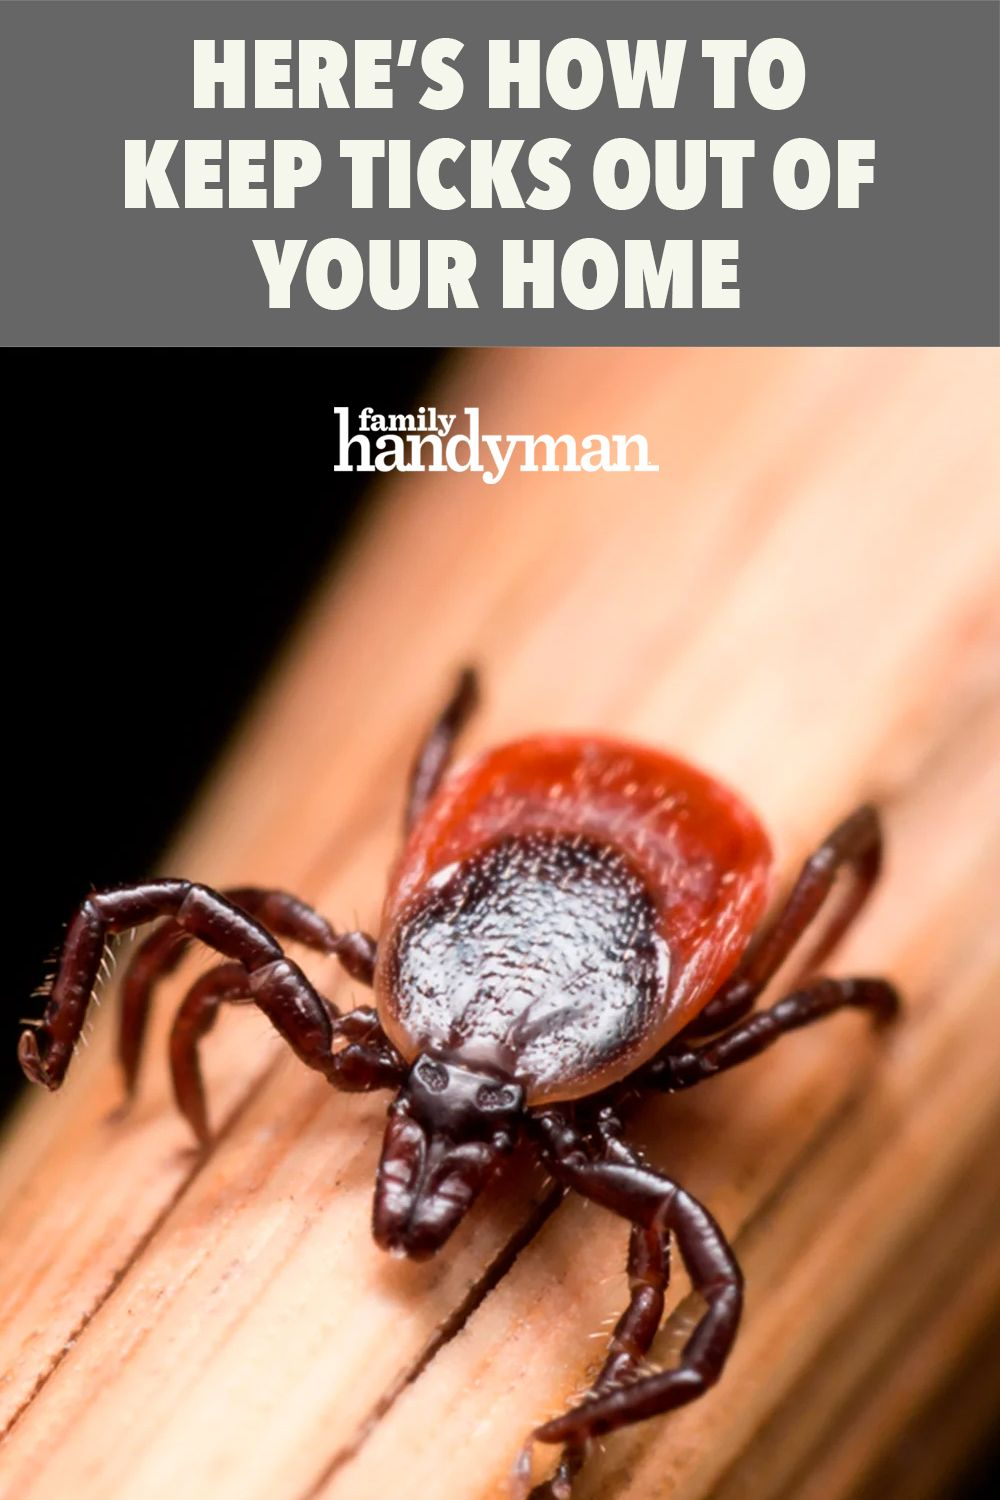 f896e98742d3eb3584a9c3b2c0751a5b - How To Get Rid Of Ticks In Your Bed